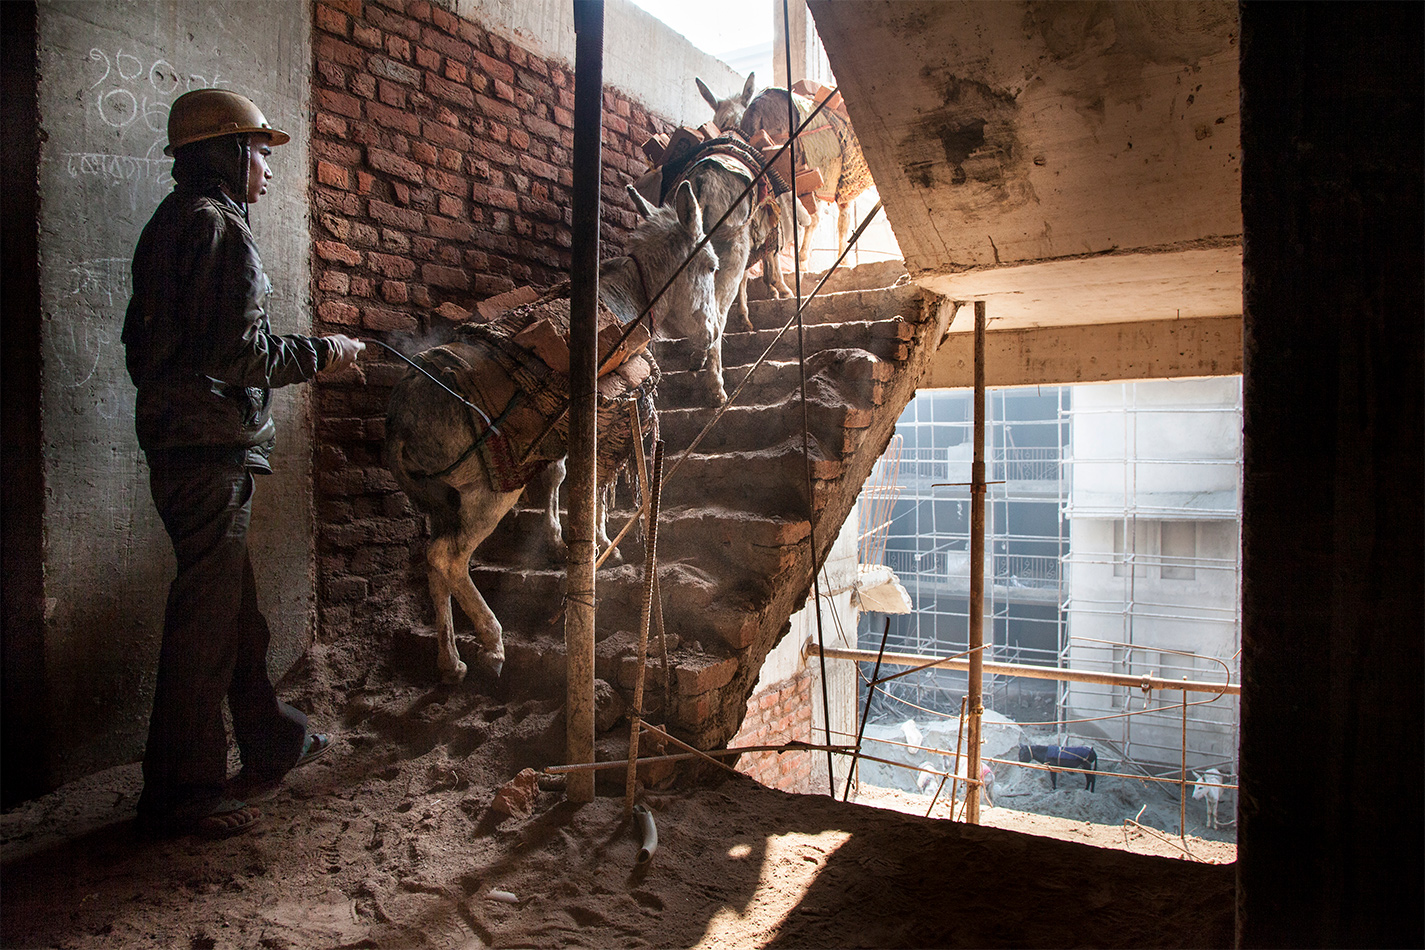 Donkeys working on construction sites in India